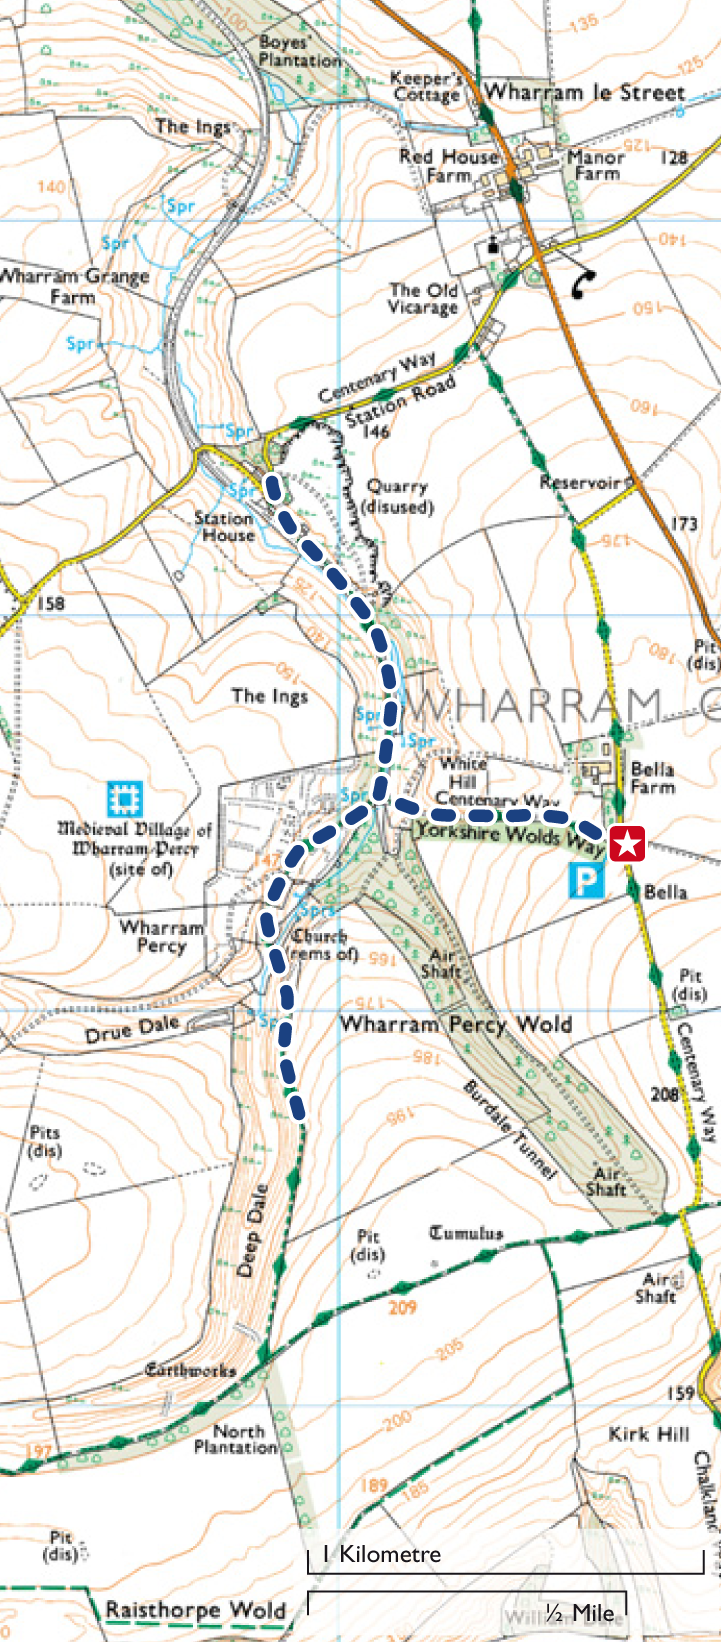 Discover the lost village of Wharram Percy | Top 10 Trails